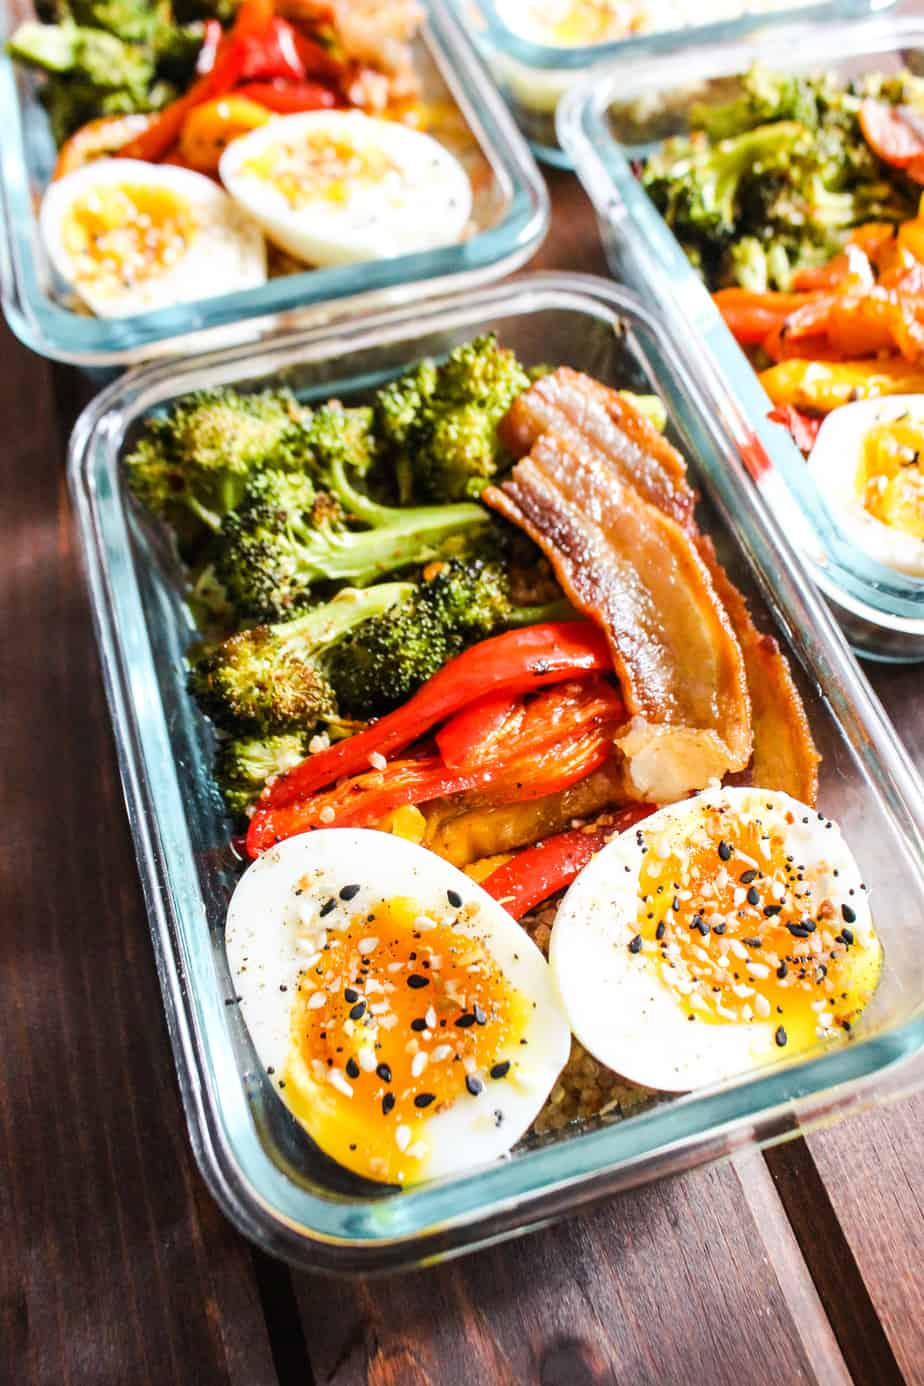 Glass container with roasted broccoli, bell peppers, bacon, and jammy eggs.